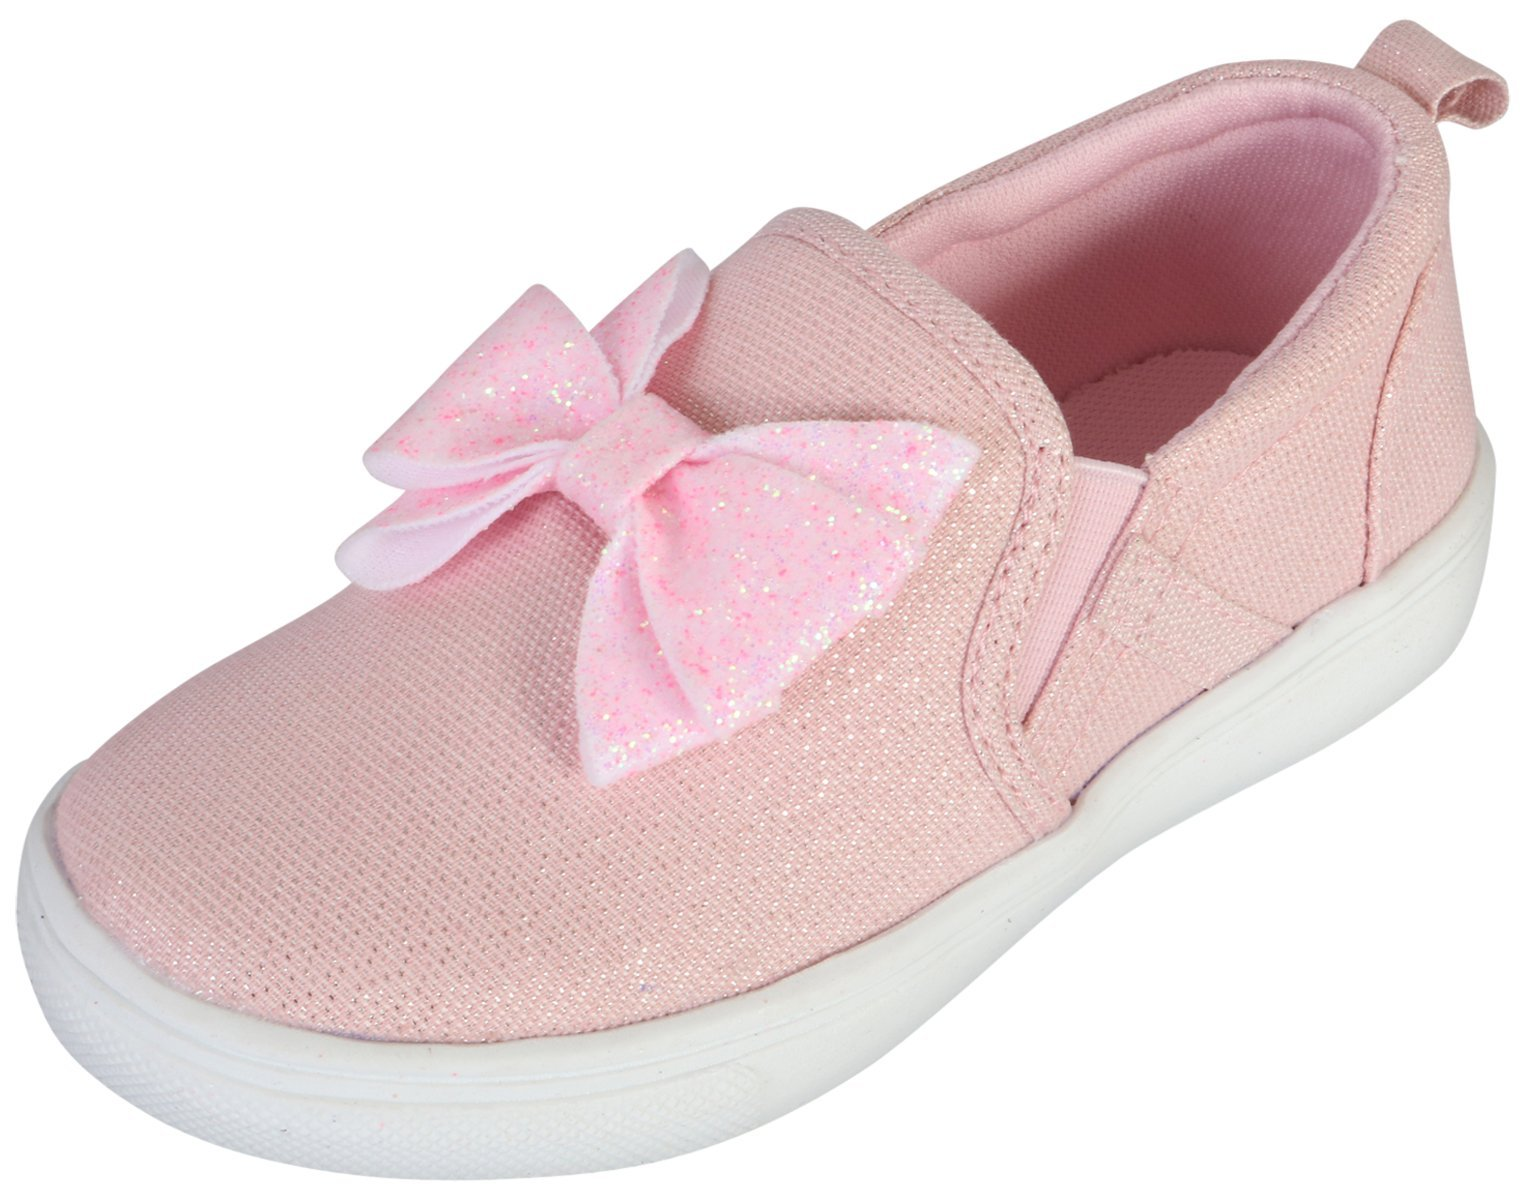 Nicole Miller New York Girl's Slip-On Canvas Sneaker with Glitter Bow, Pink, 6 M US Toddler'